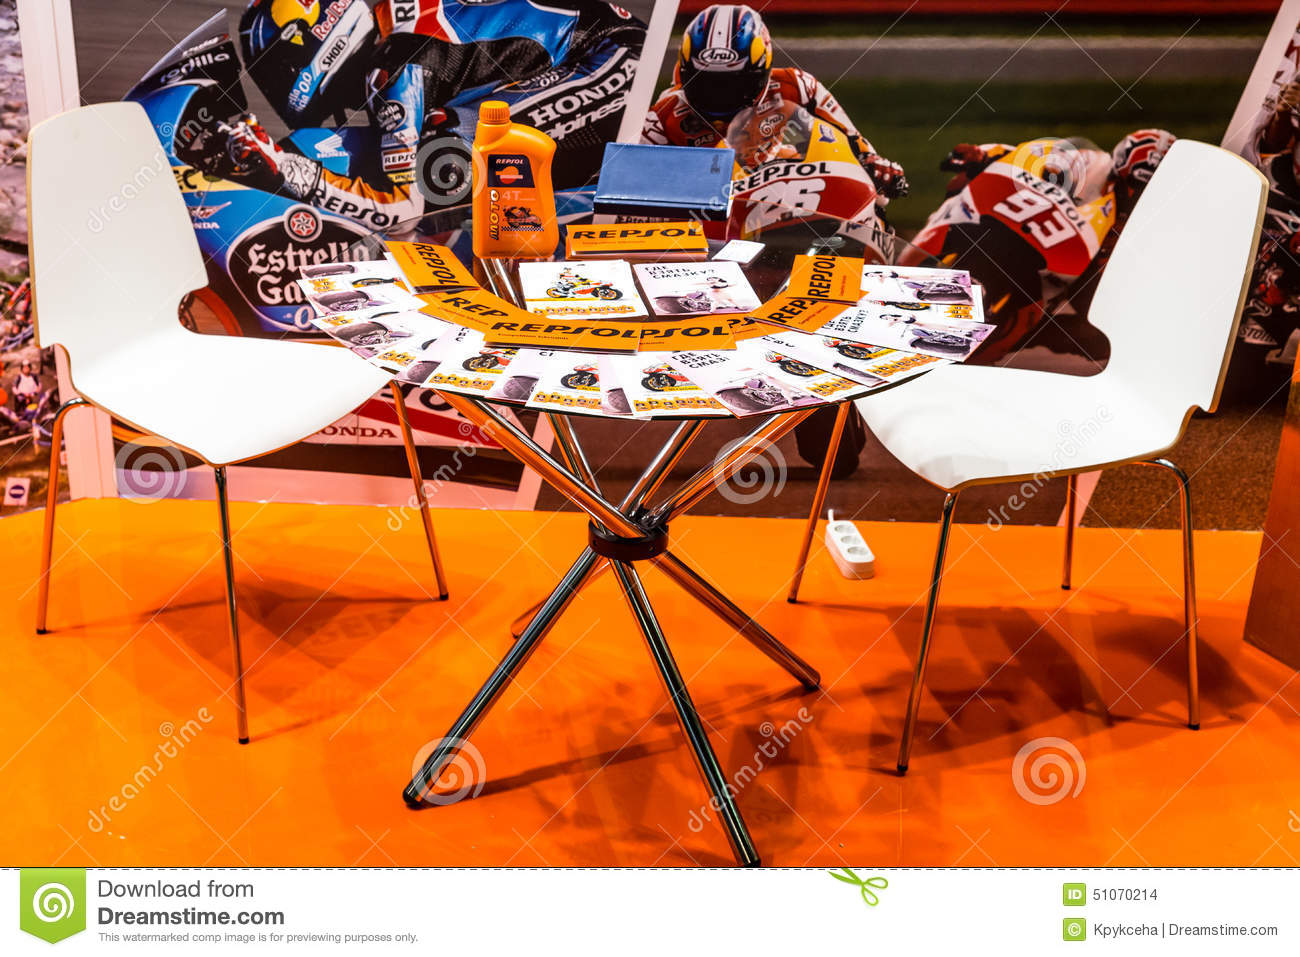 Expo Exhibition Stands Near Me : Motopark bikepark table with brochures near